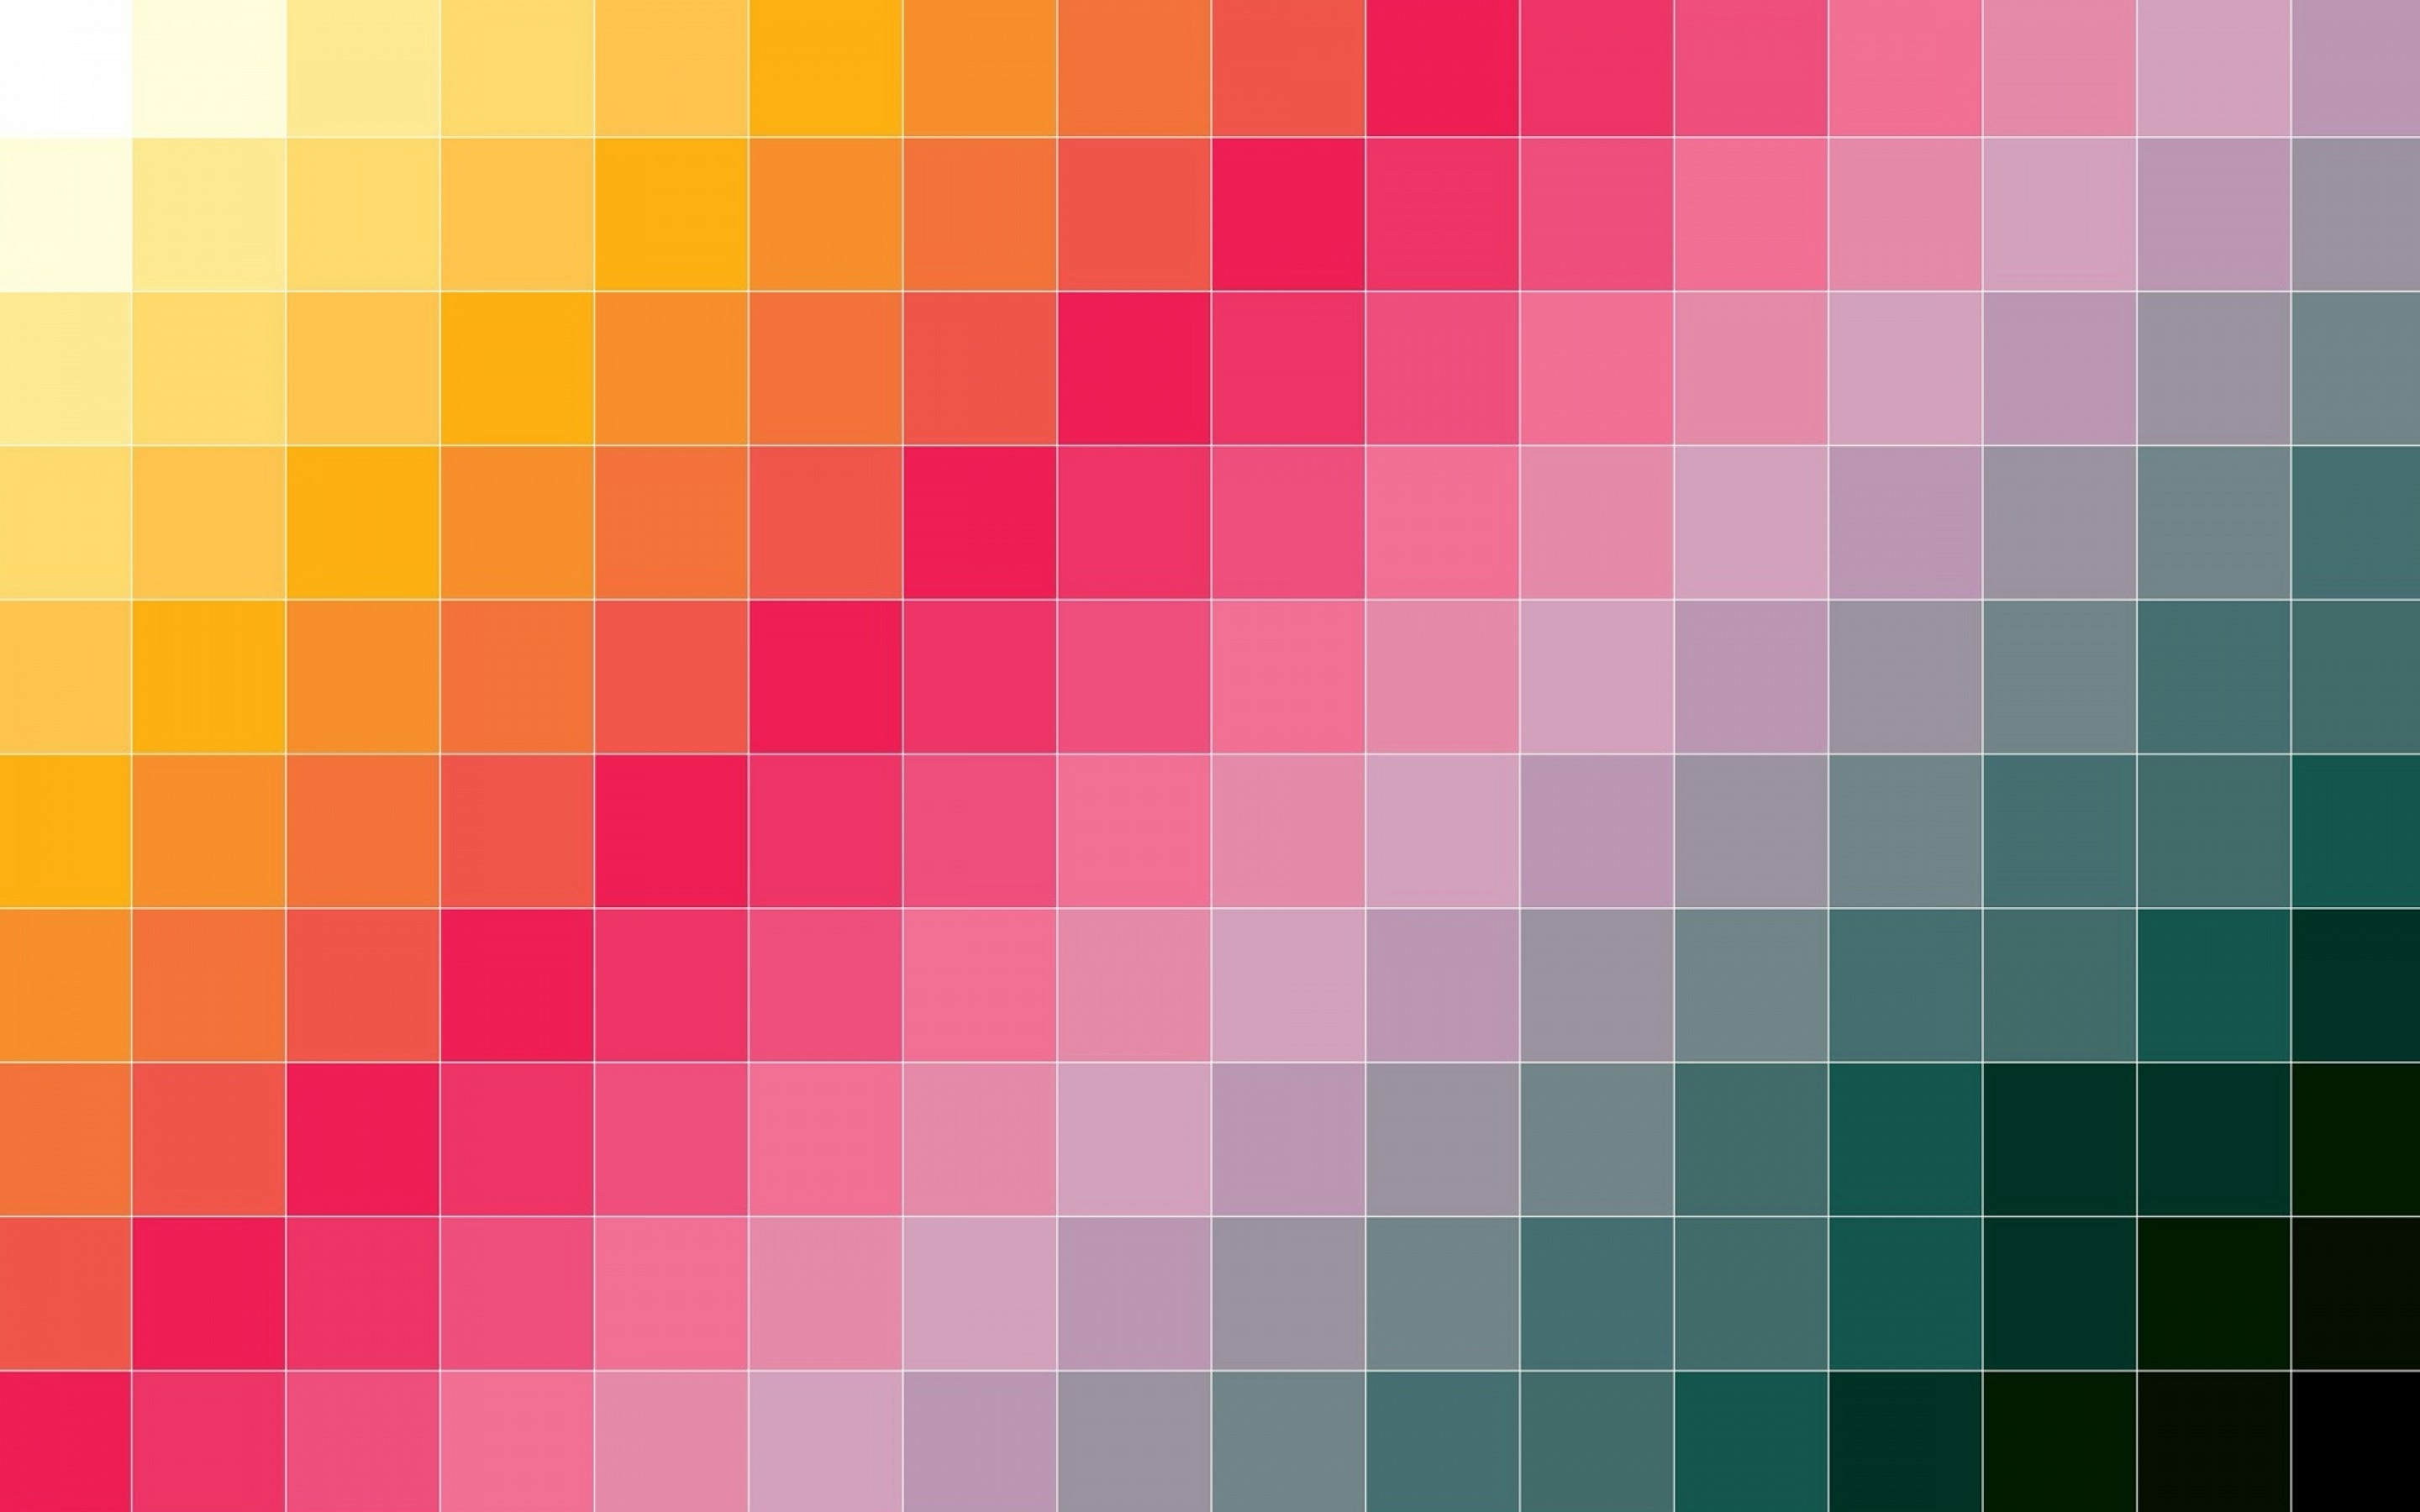 Wallpaper Iphone Pastel Flip Color Grid Mac Wallpaper Download Free Mac